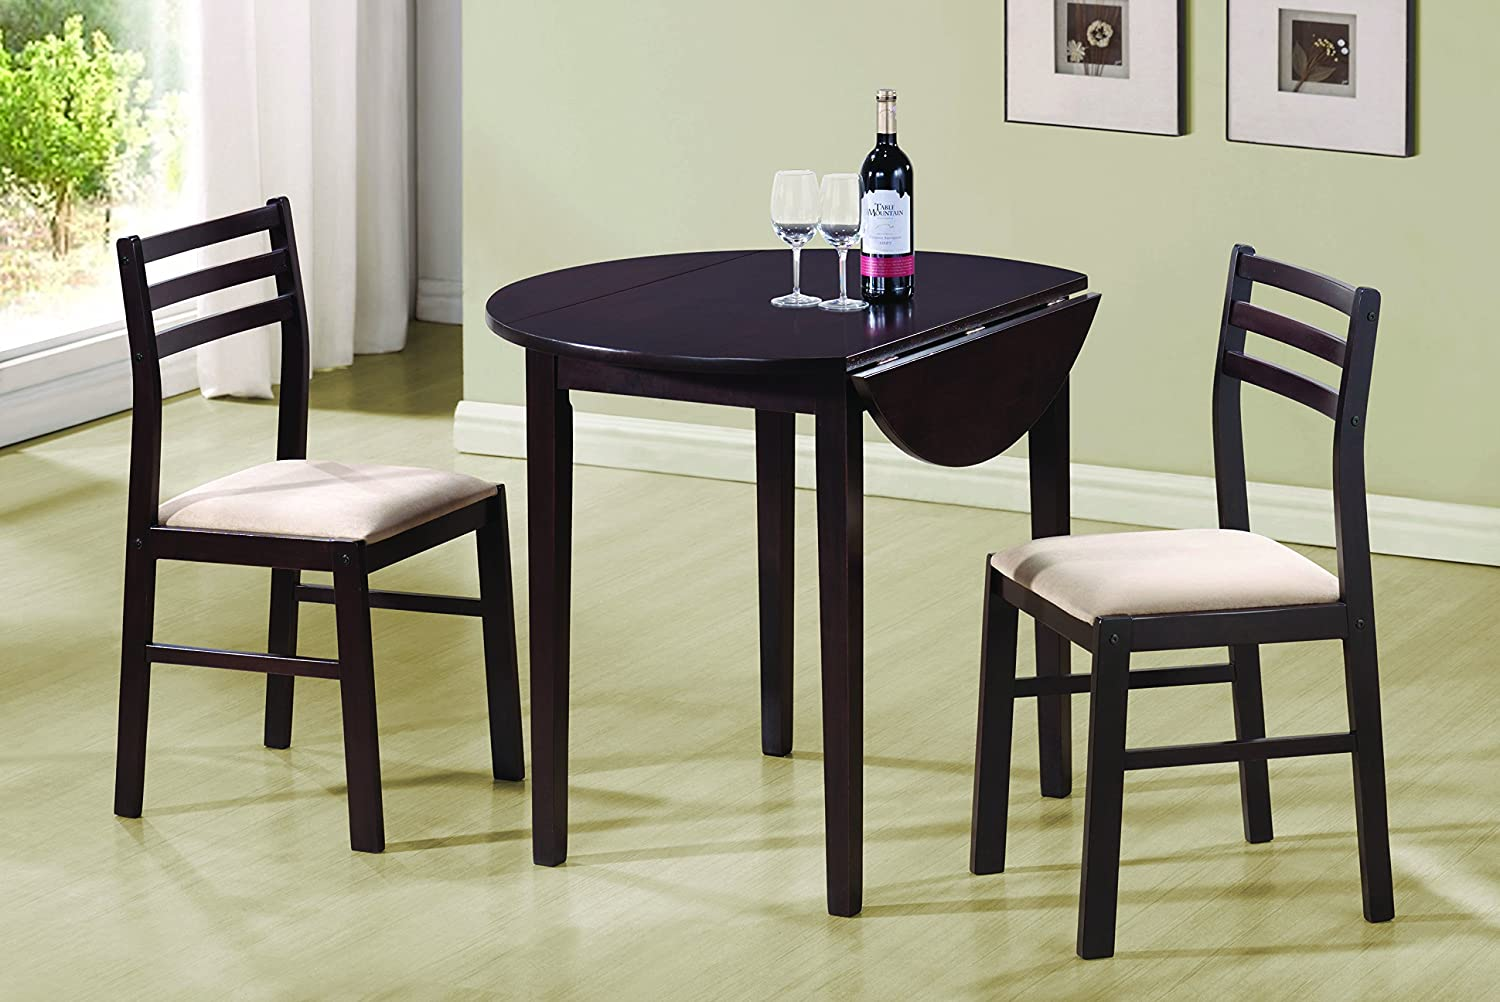 Coaster 3 Piece Dining Set Cappuccino - Table & Chair Sets Amazon.com